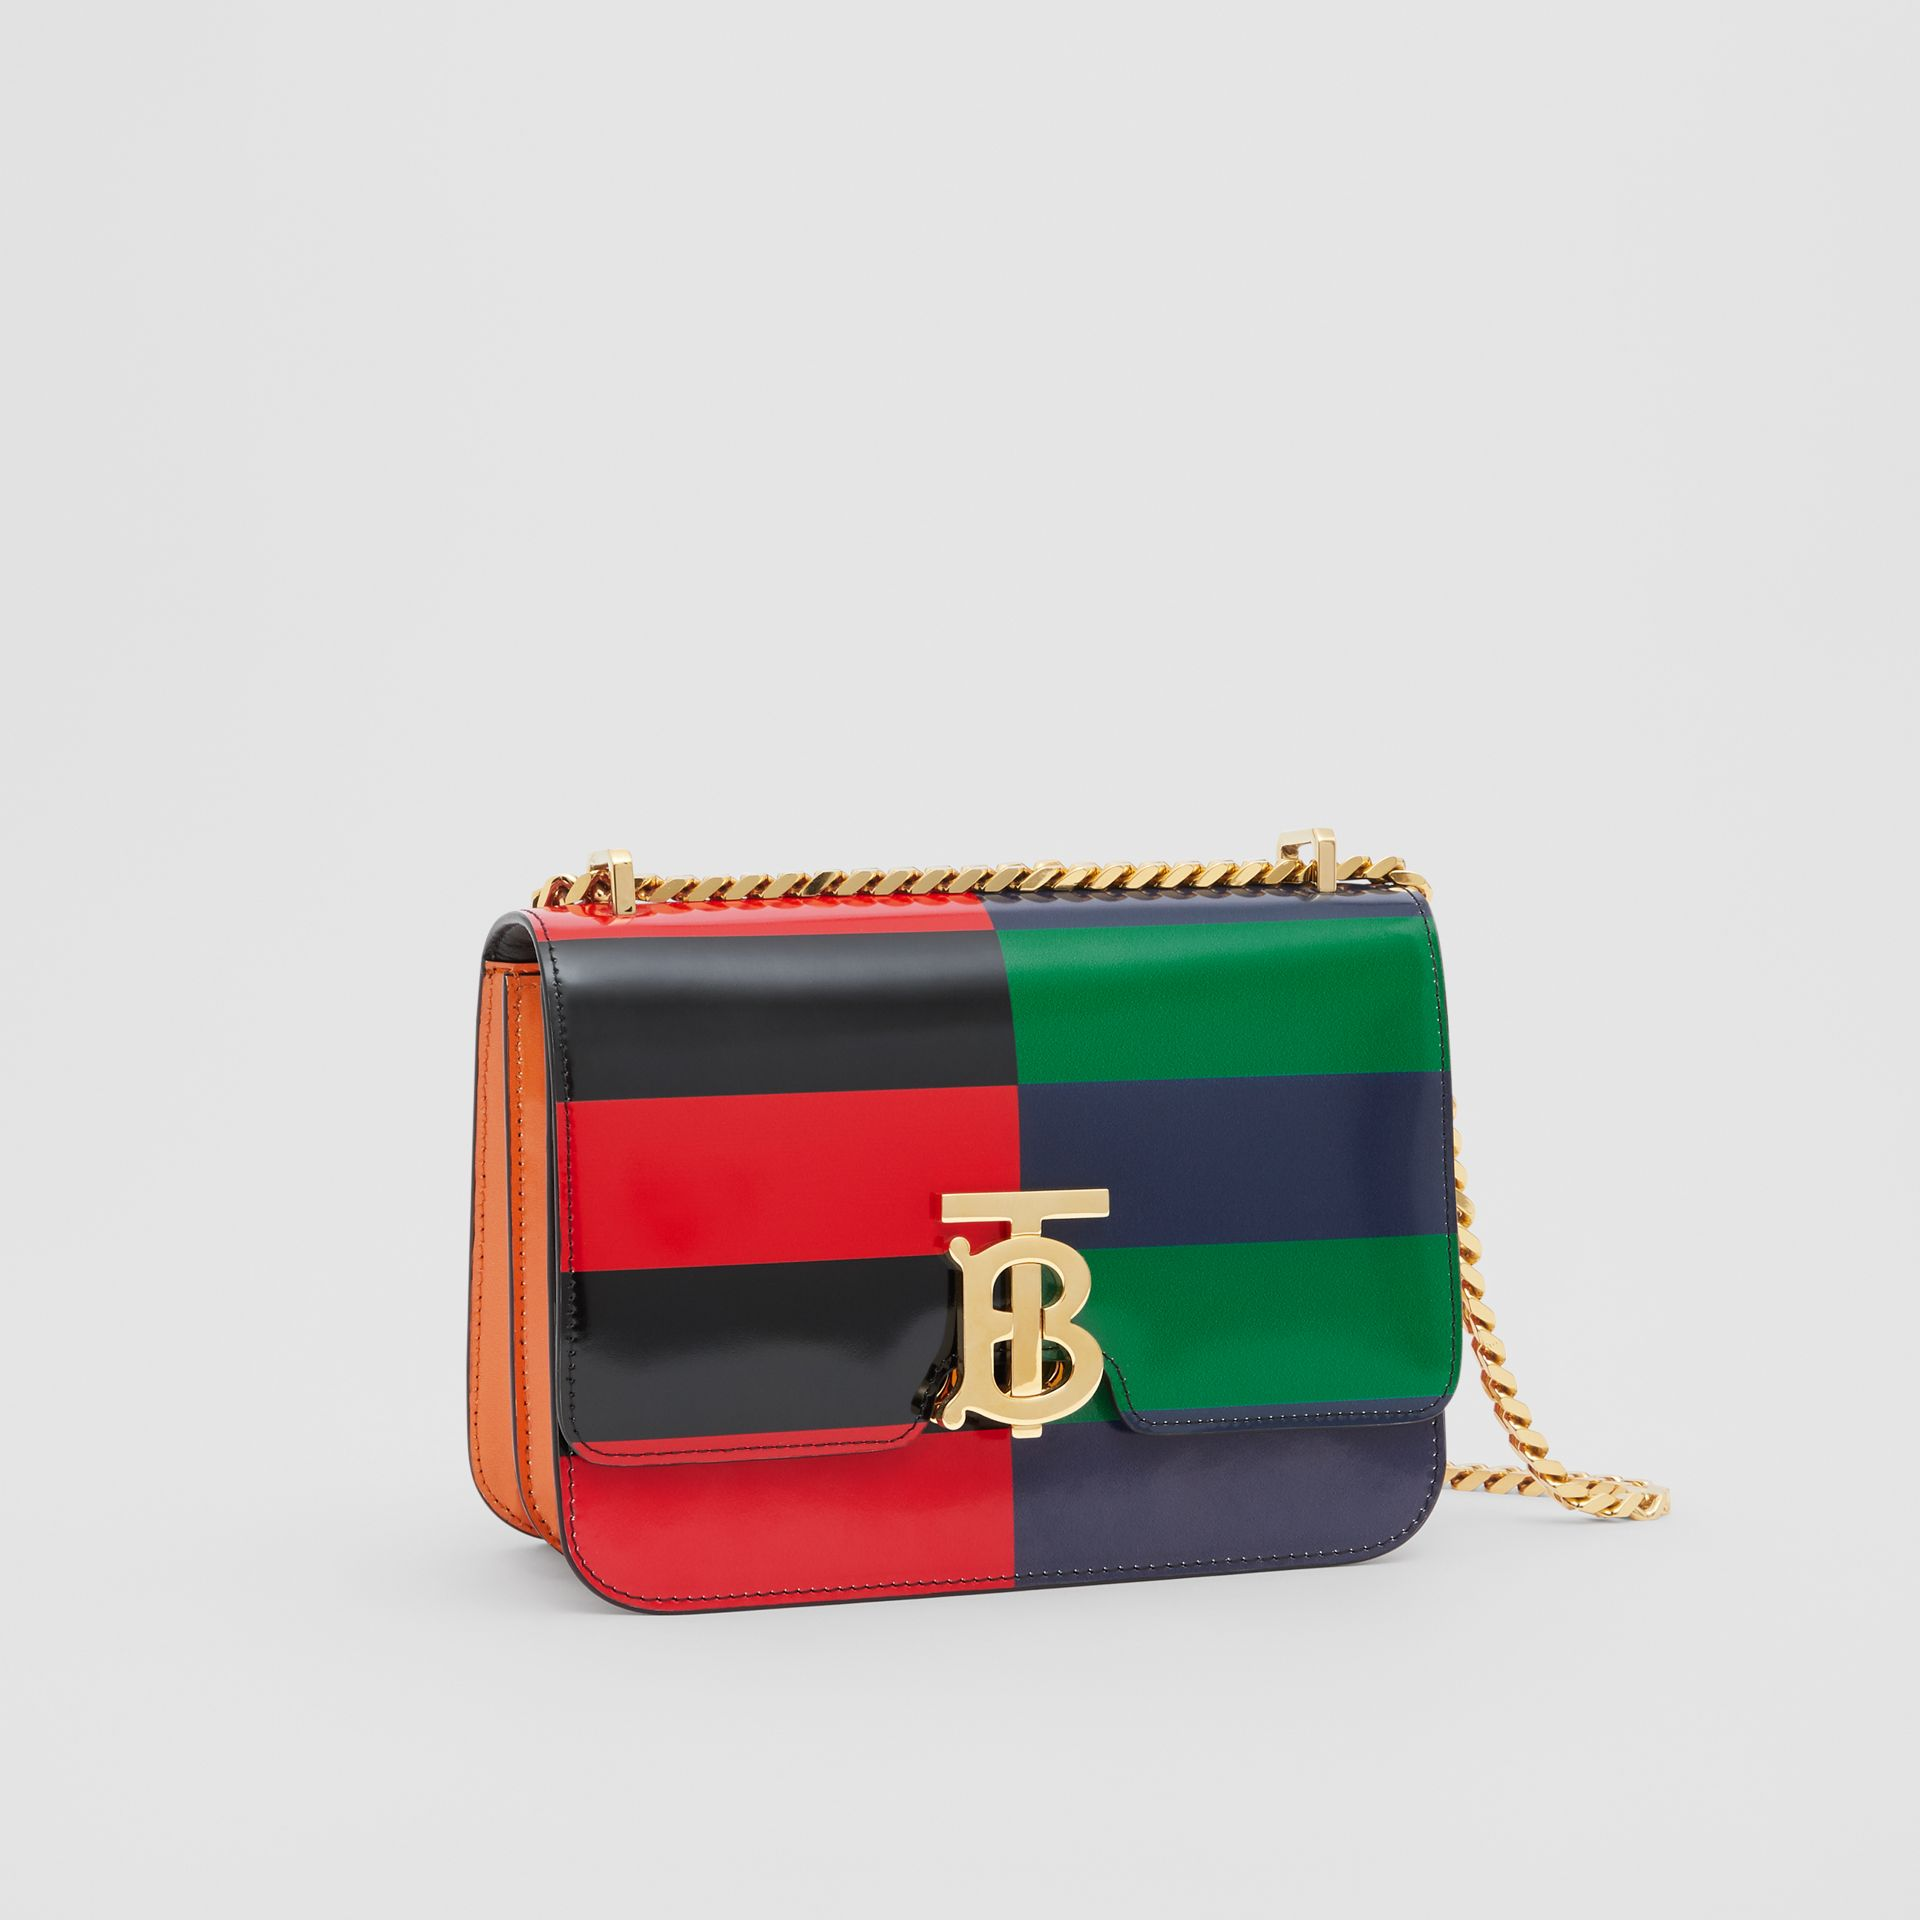 Small Striped Leather TB Bag in Black - Women | Burberry - gallery image 6